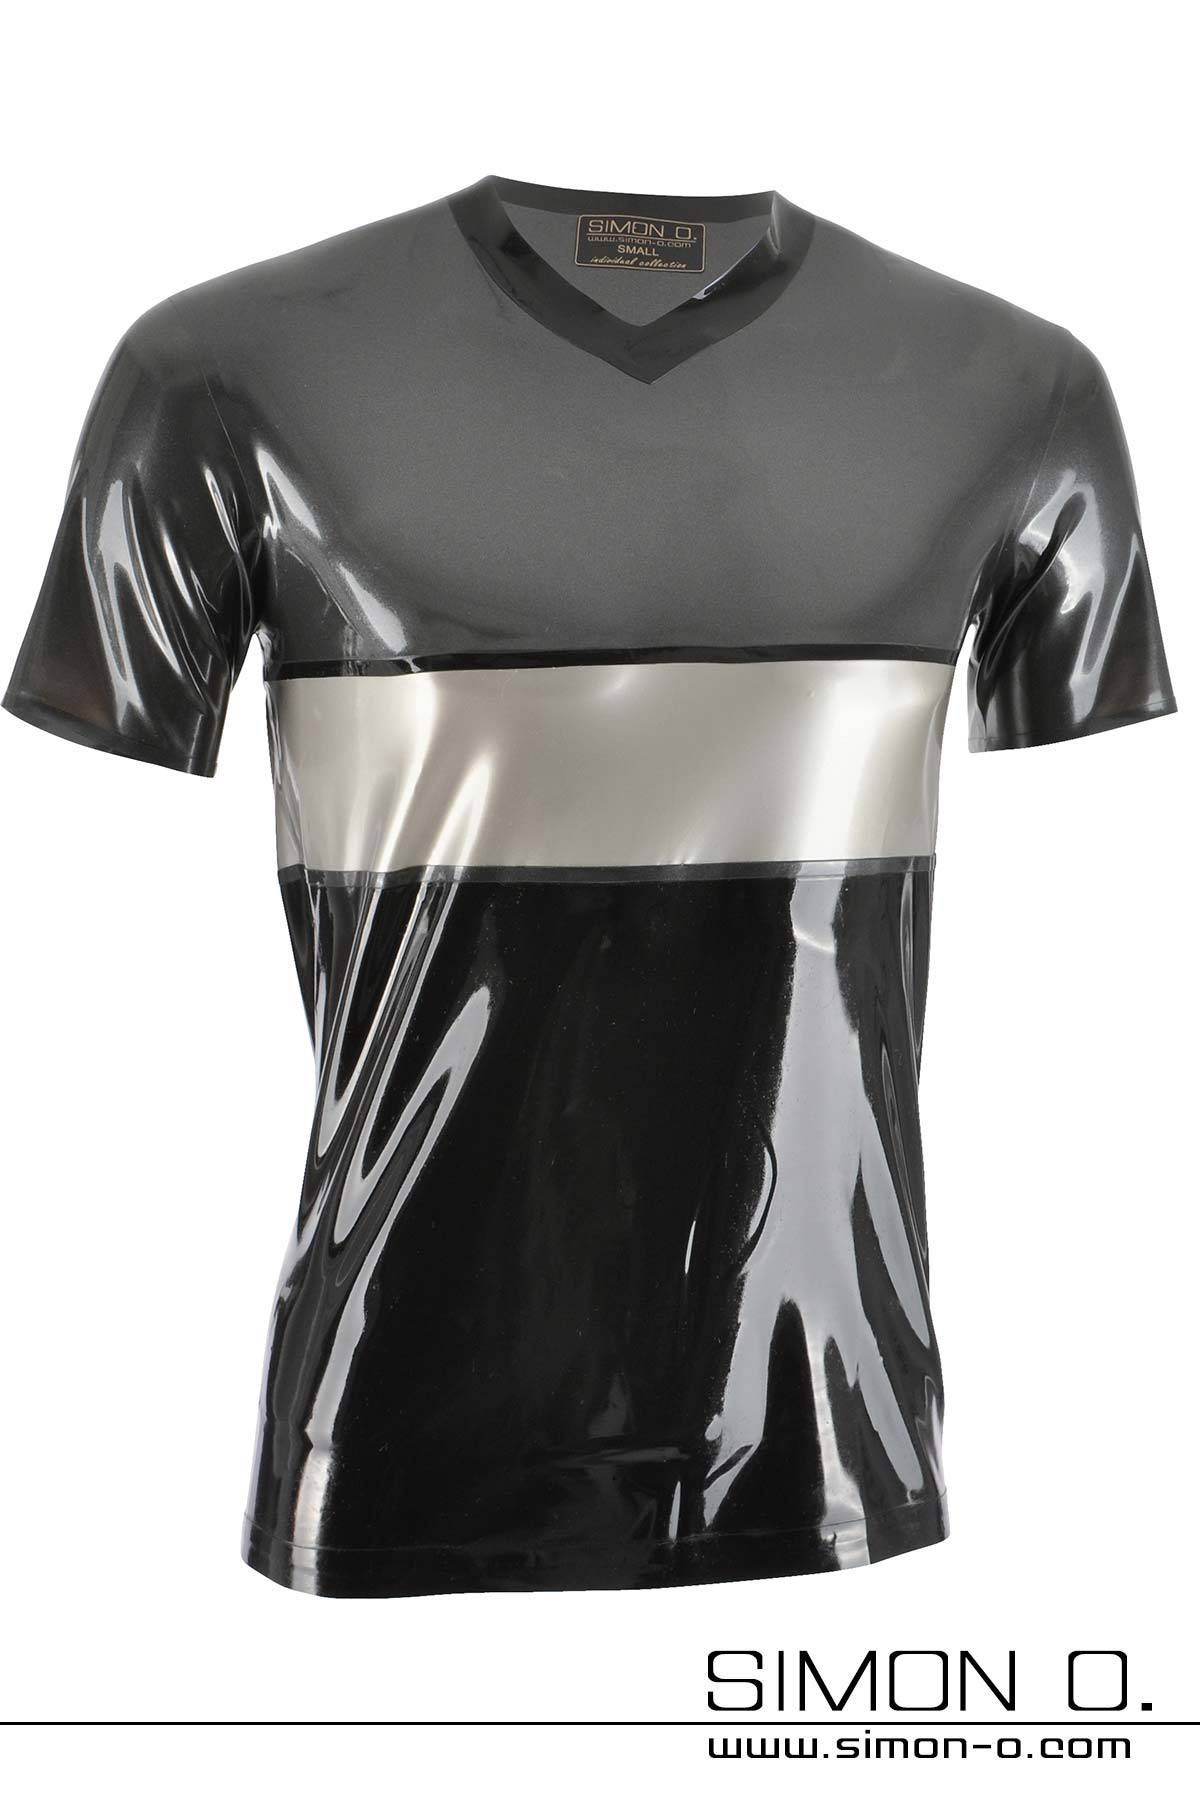 Tricolor short-sleeved latex shirt in the colors metallic grey, silver and black